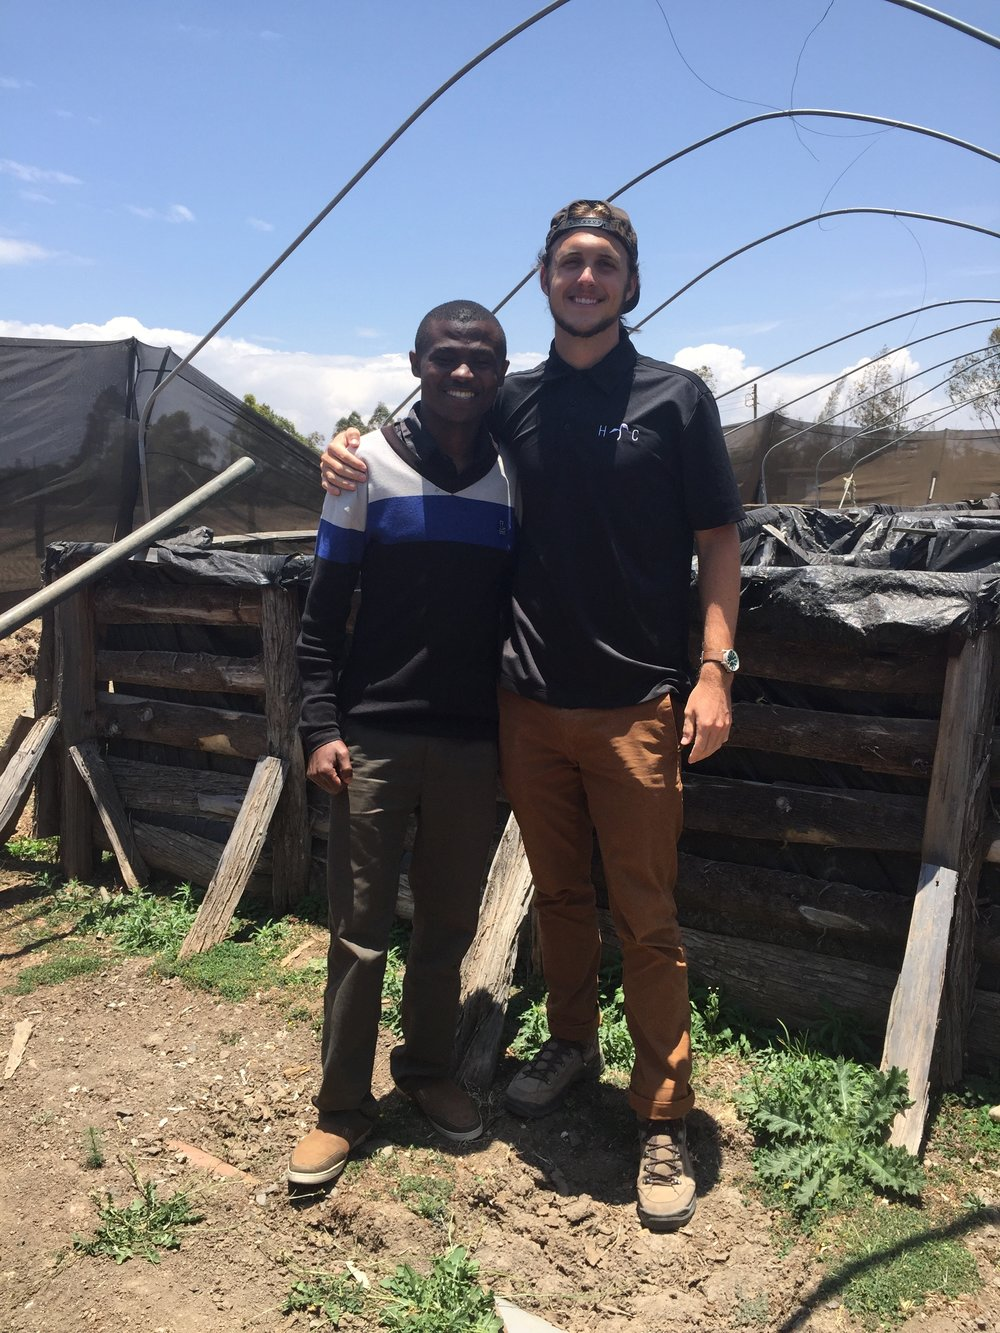 Geoff and Mavin, one of HC's community partners in Kenya.